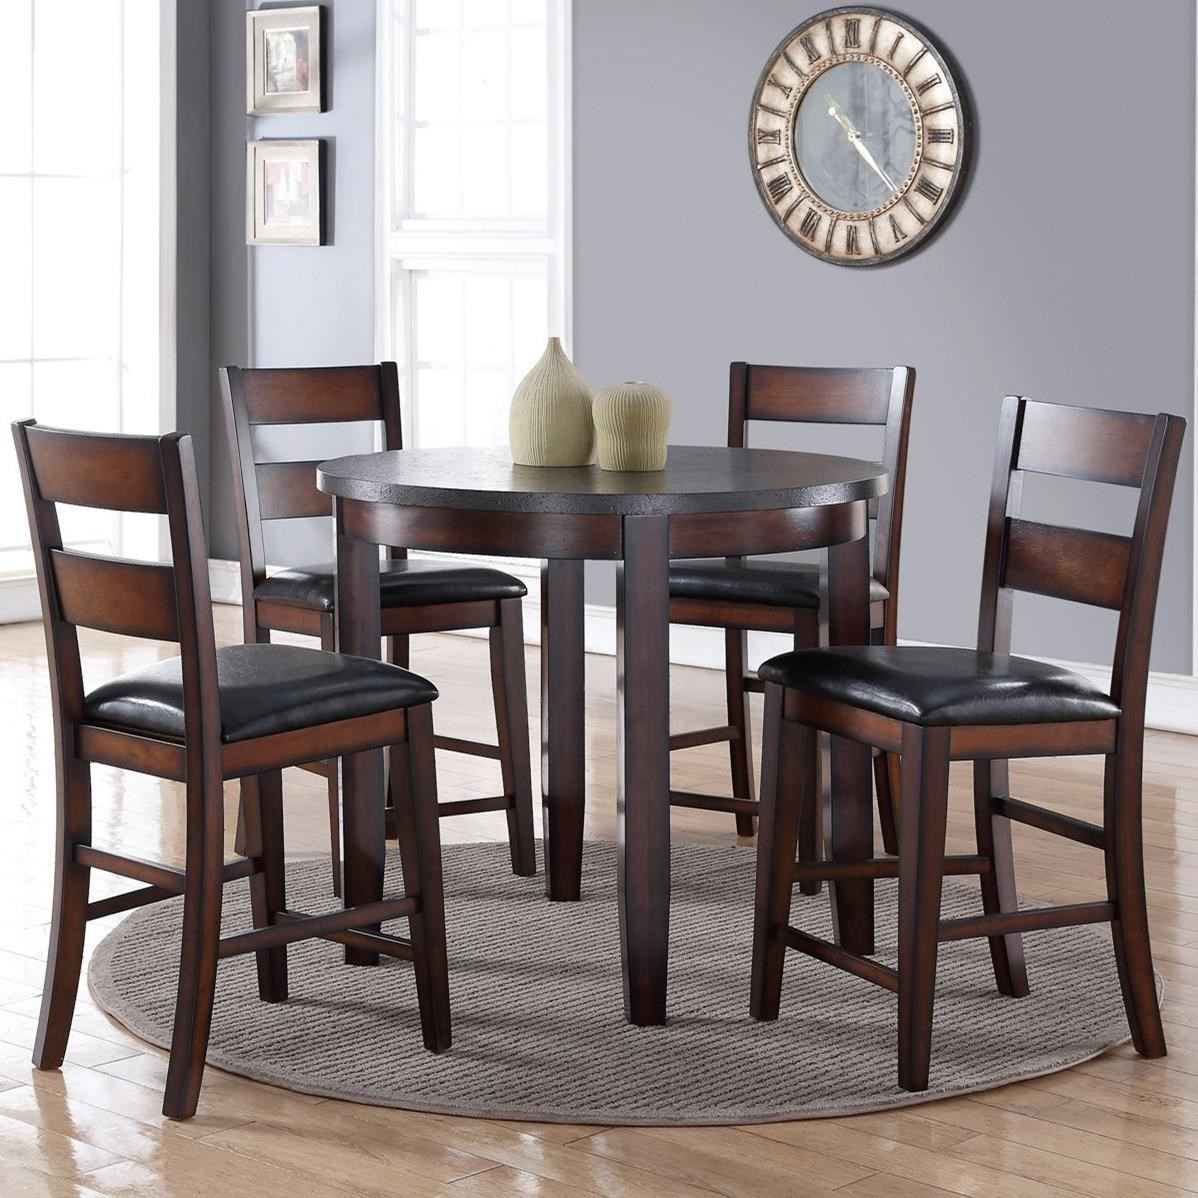 Legends Furniture Rockport 5 Piece Pub Table Set With Stain Resistant Top